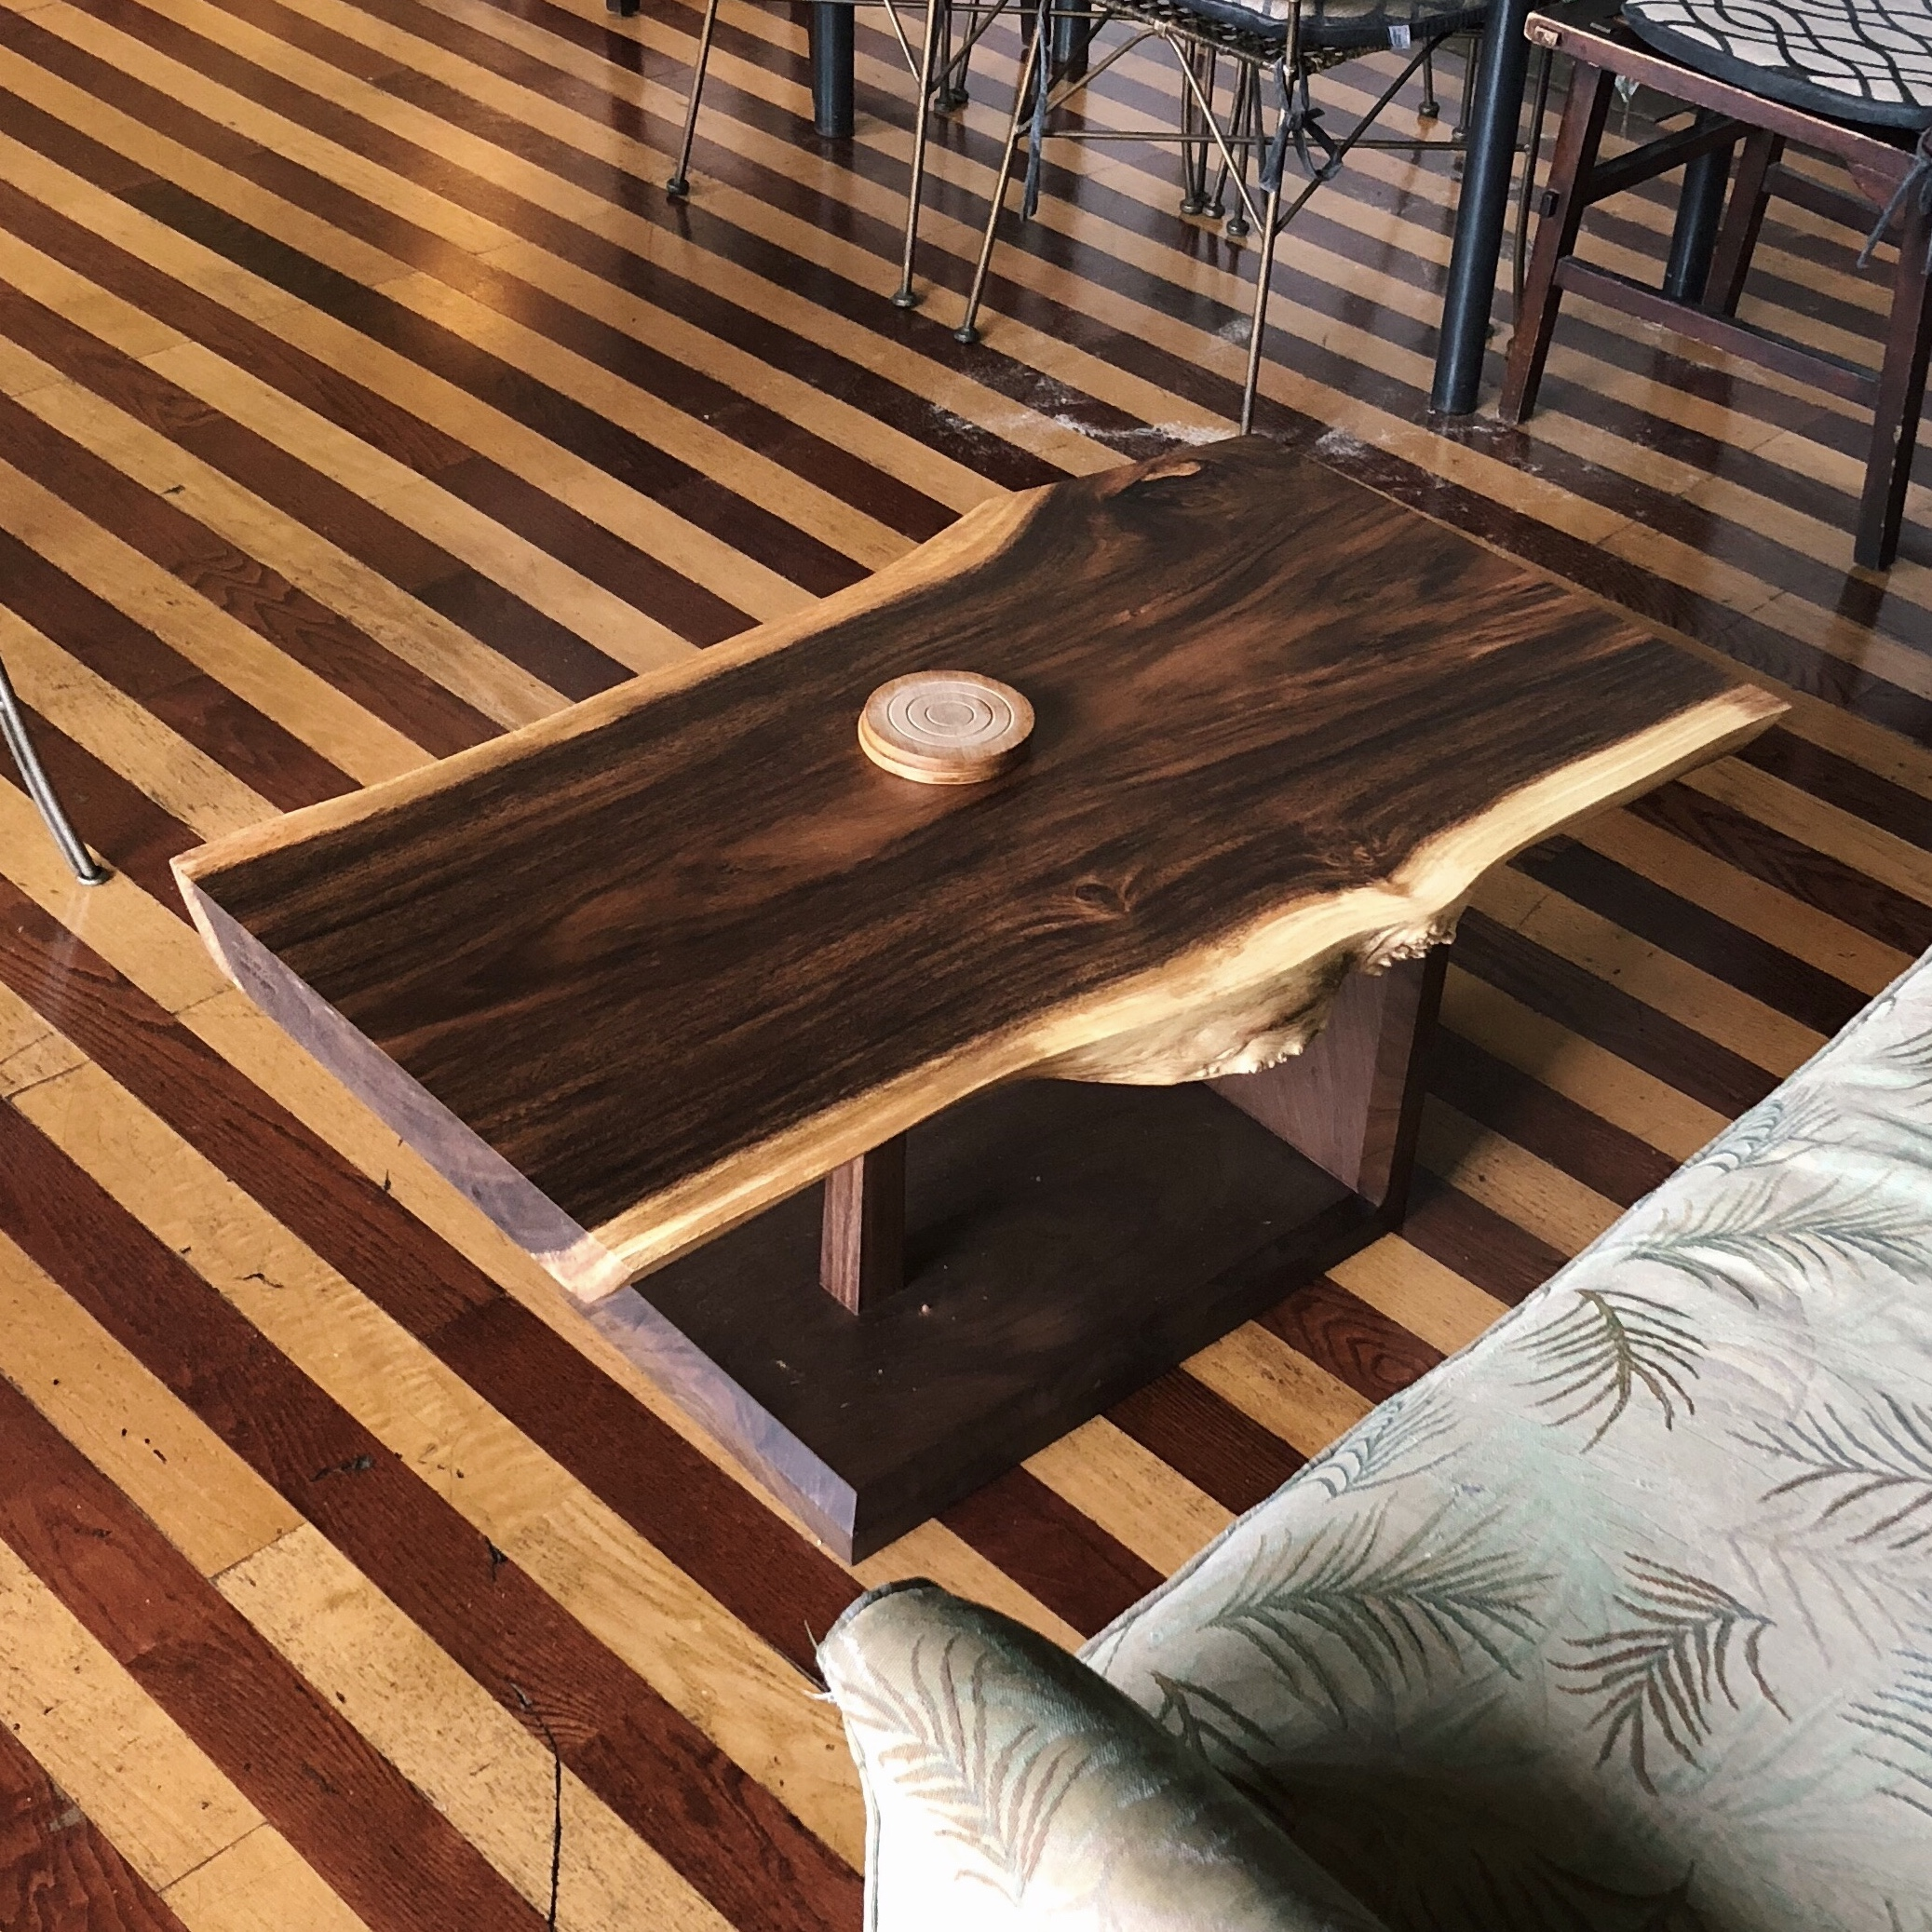 Monkeypod live edge slab coffee table with walnut base. This coffee table is in use at the Hawaiian Islands Cafe in Waimanalo!